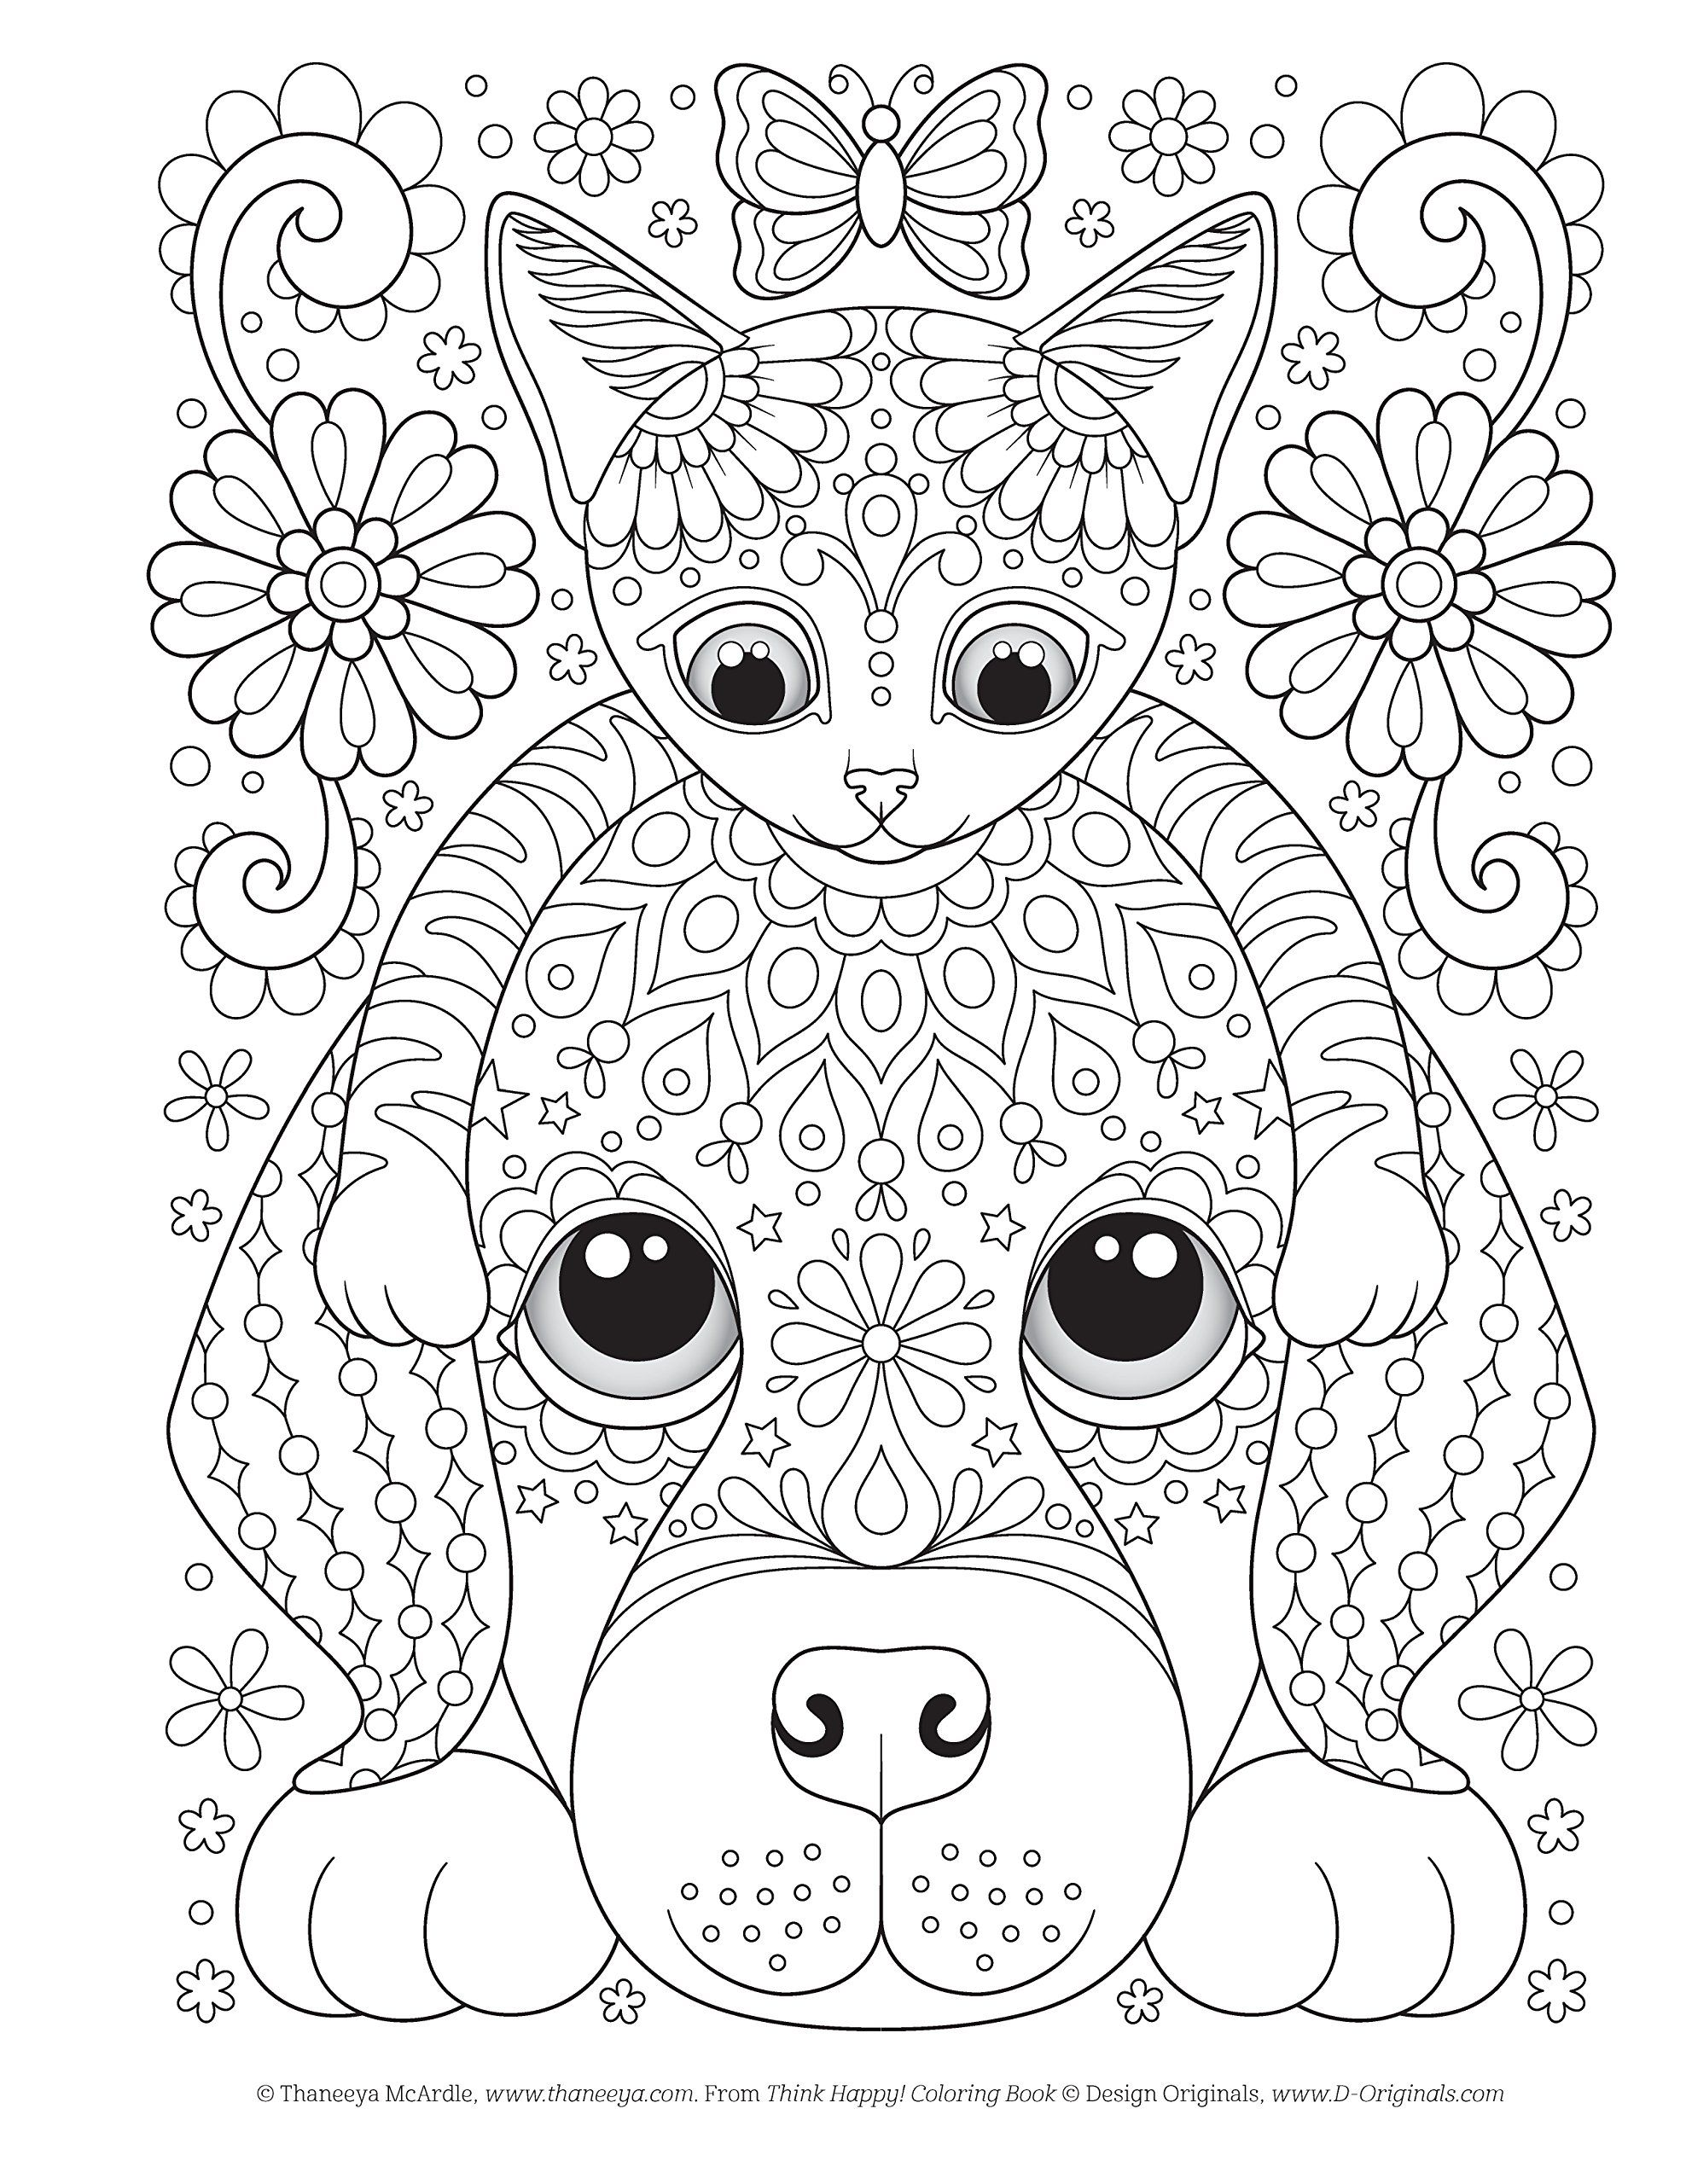 Pin By Claudia Sauco On Coloring Dog Coloring Page Mandala Coloring Pages Coloring Books